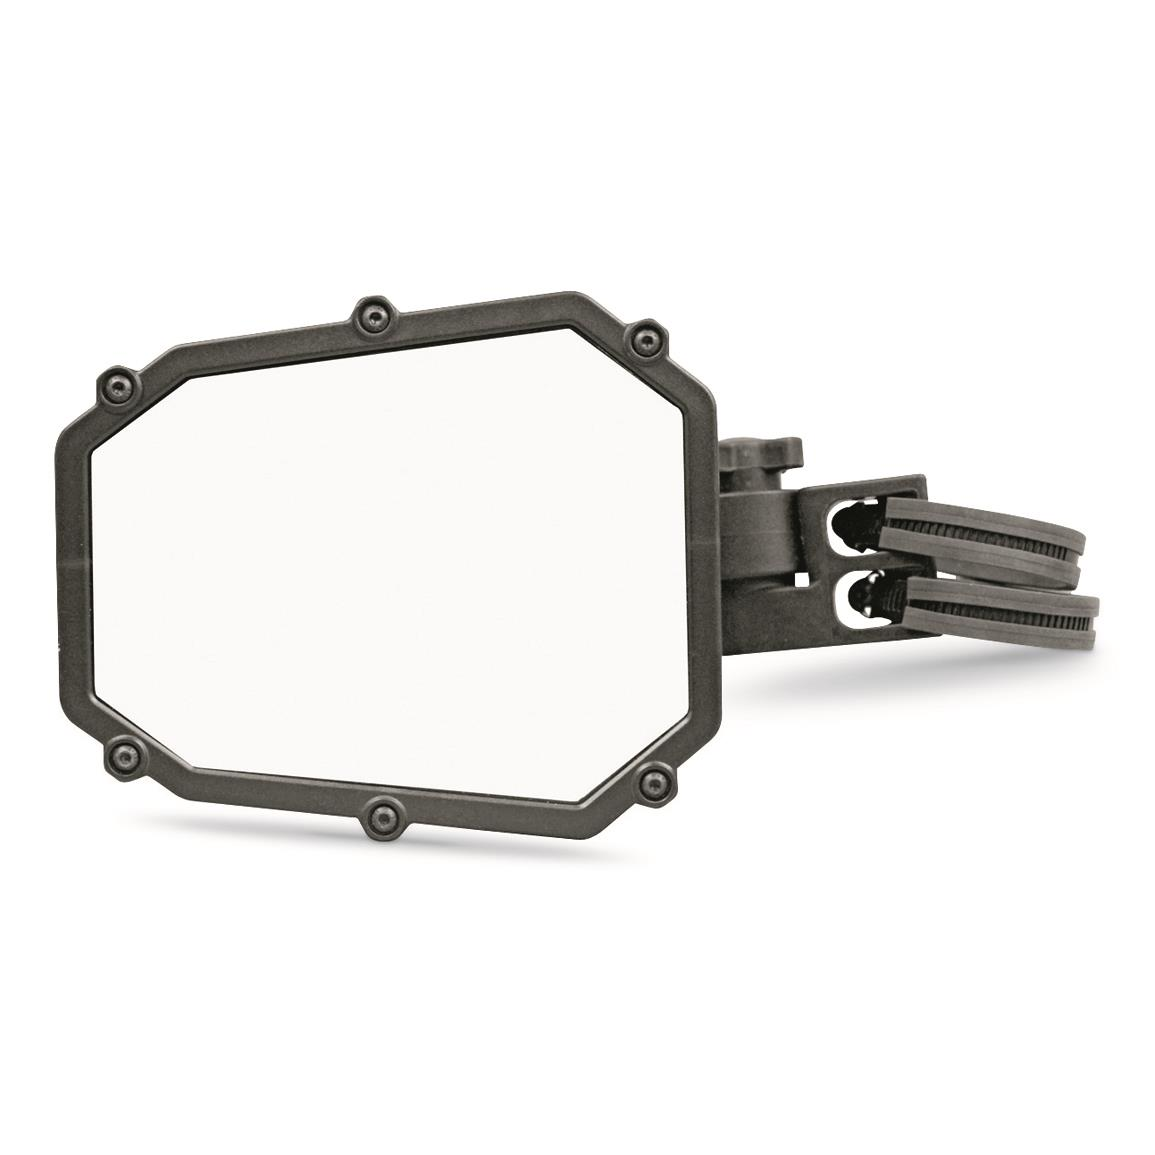 Convex style mirror increases field of view